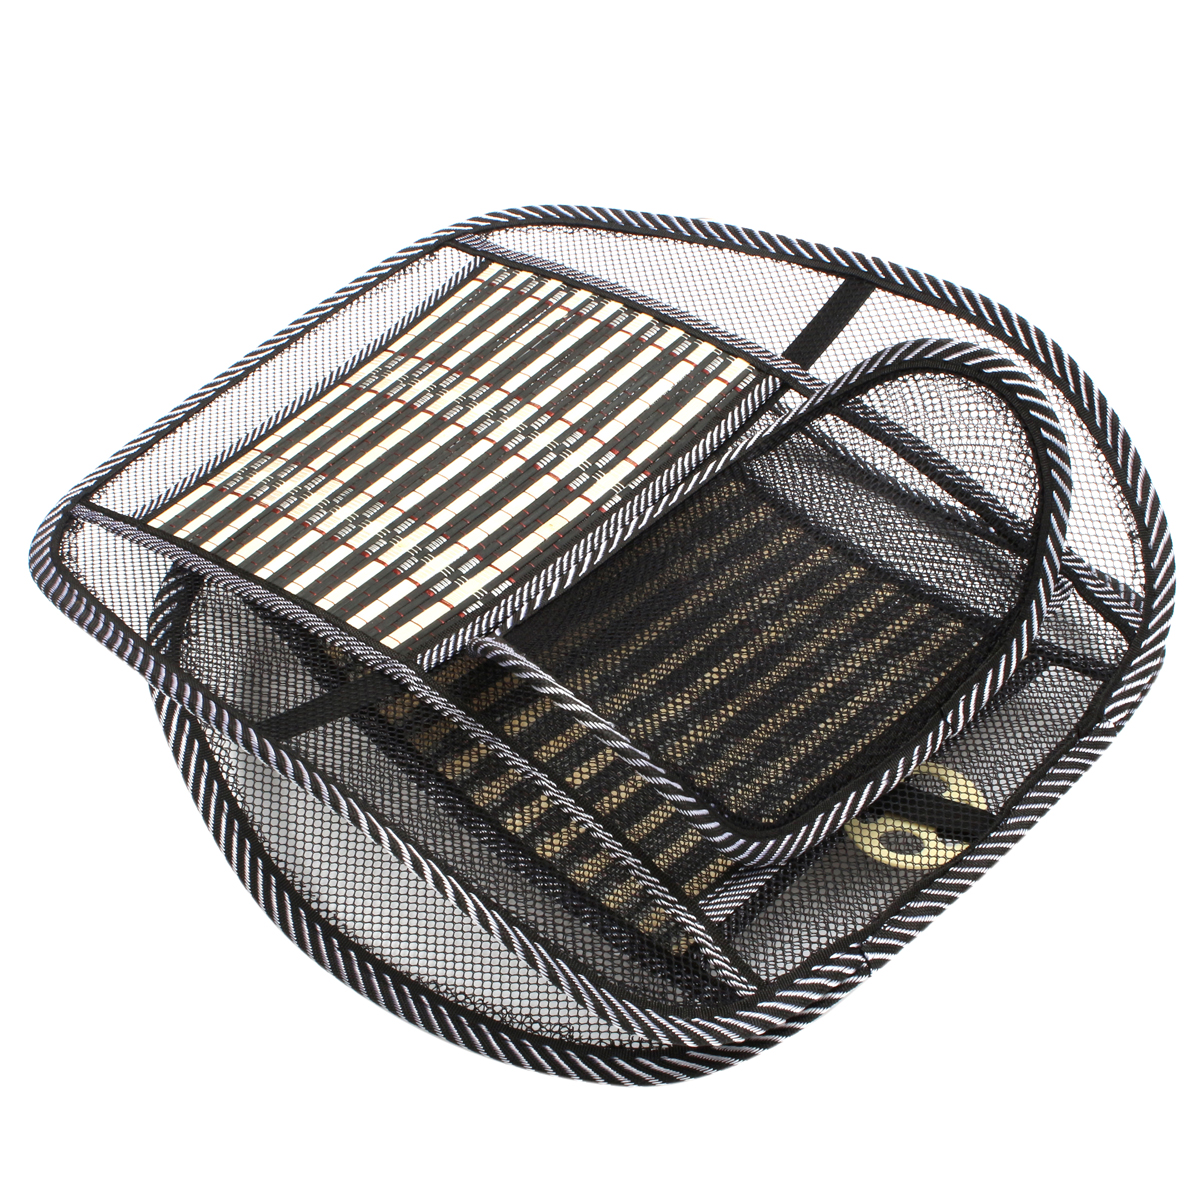 car home office cooling breathable mesh wire bamboo chip seat cushion cover mat ebay. Black Bedroom Furniture Sets. Home Design Ideas